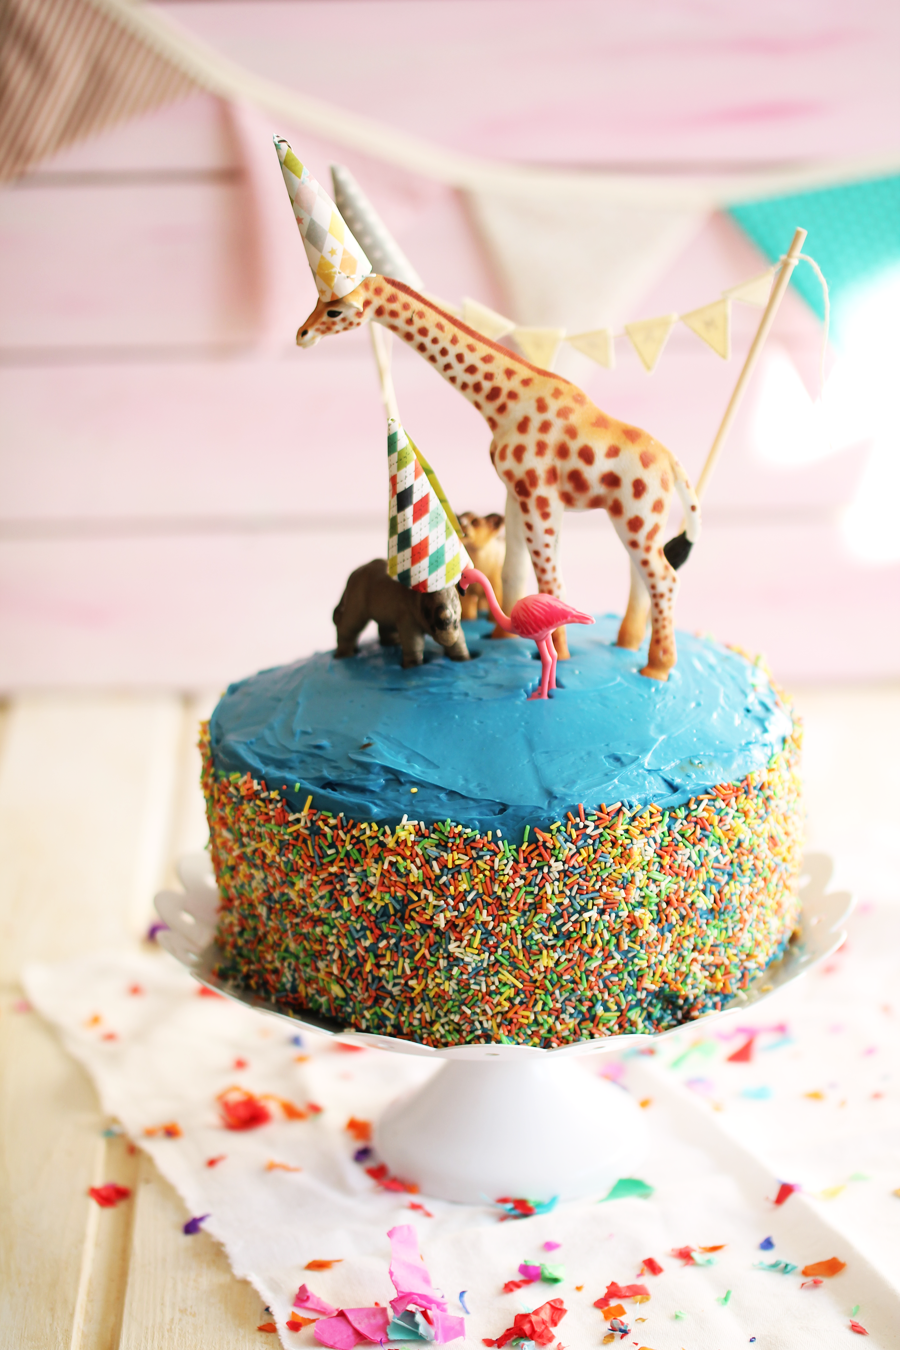 Polka-Dot-Cake selber backen